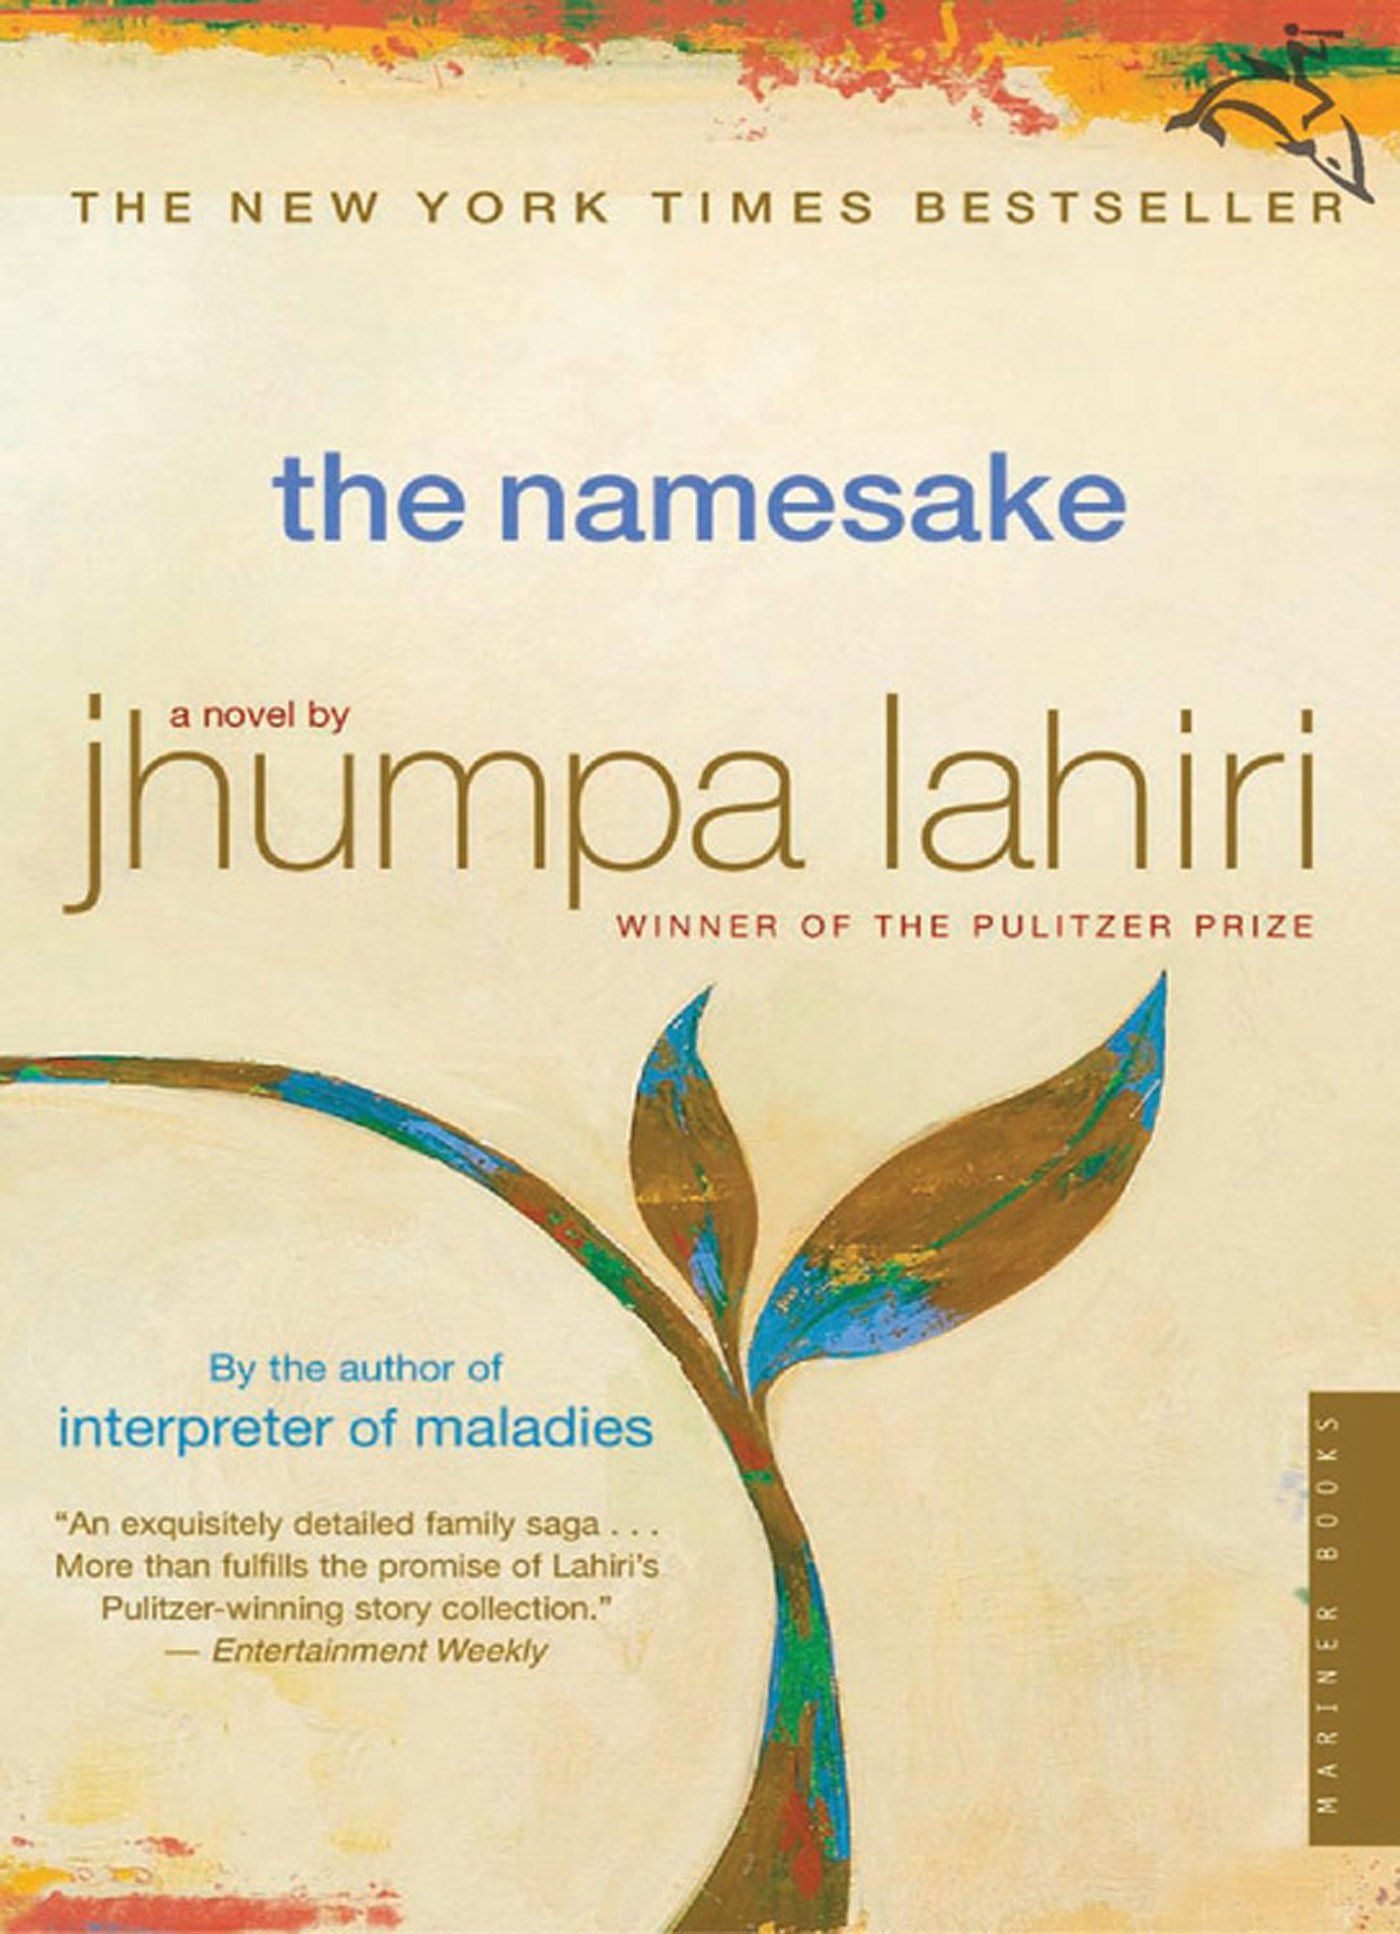 the fear in dealing problems in a temporary matter a short story by jhumpa lahiri